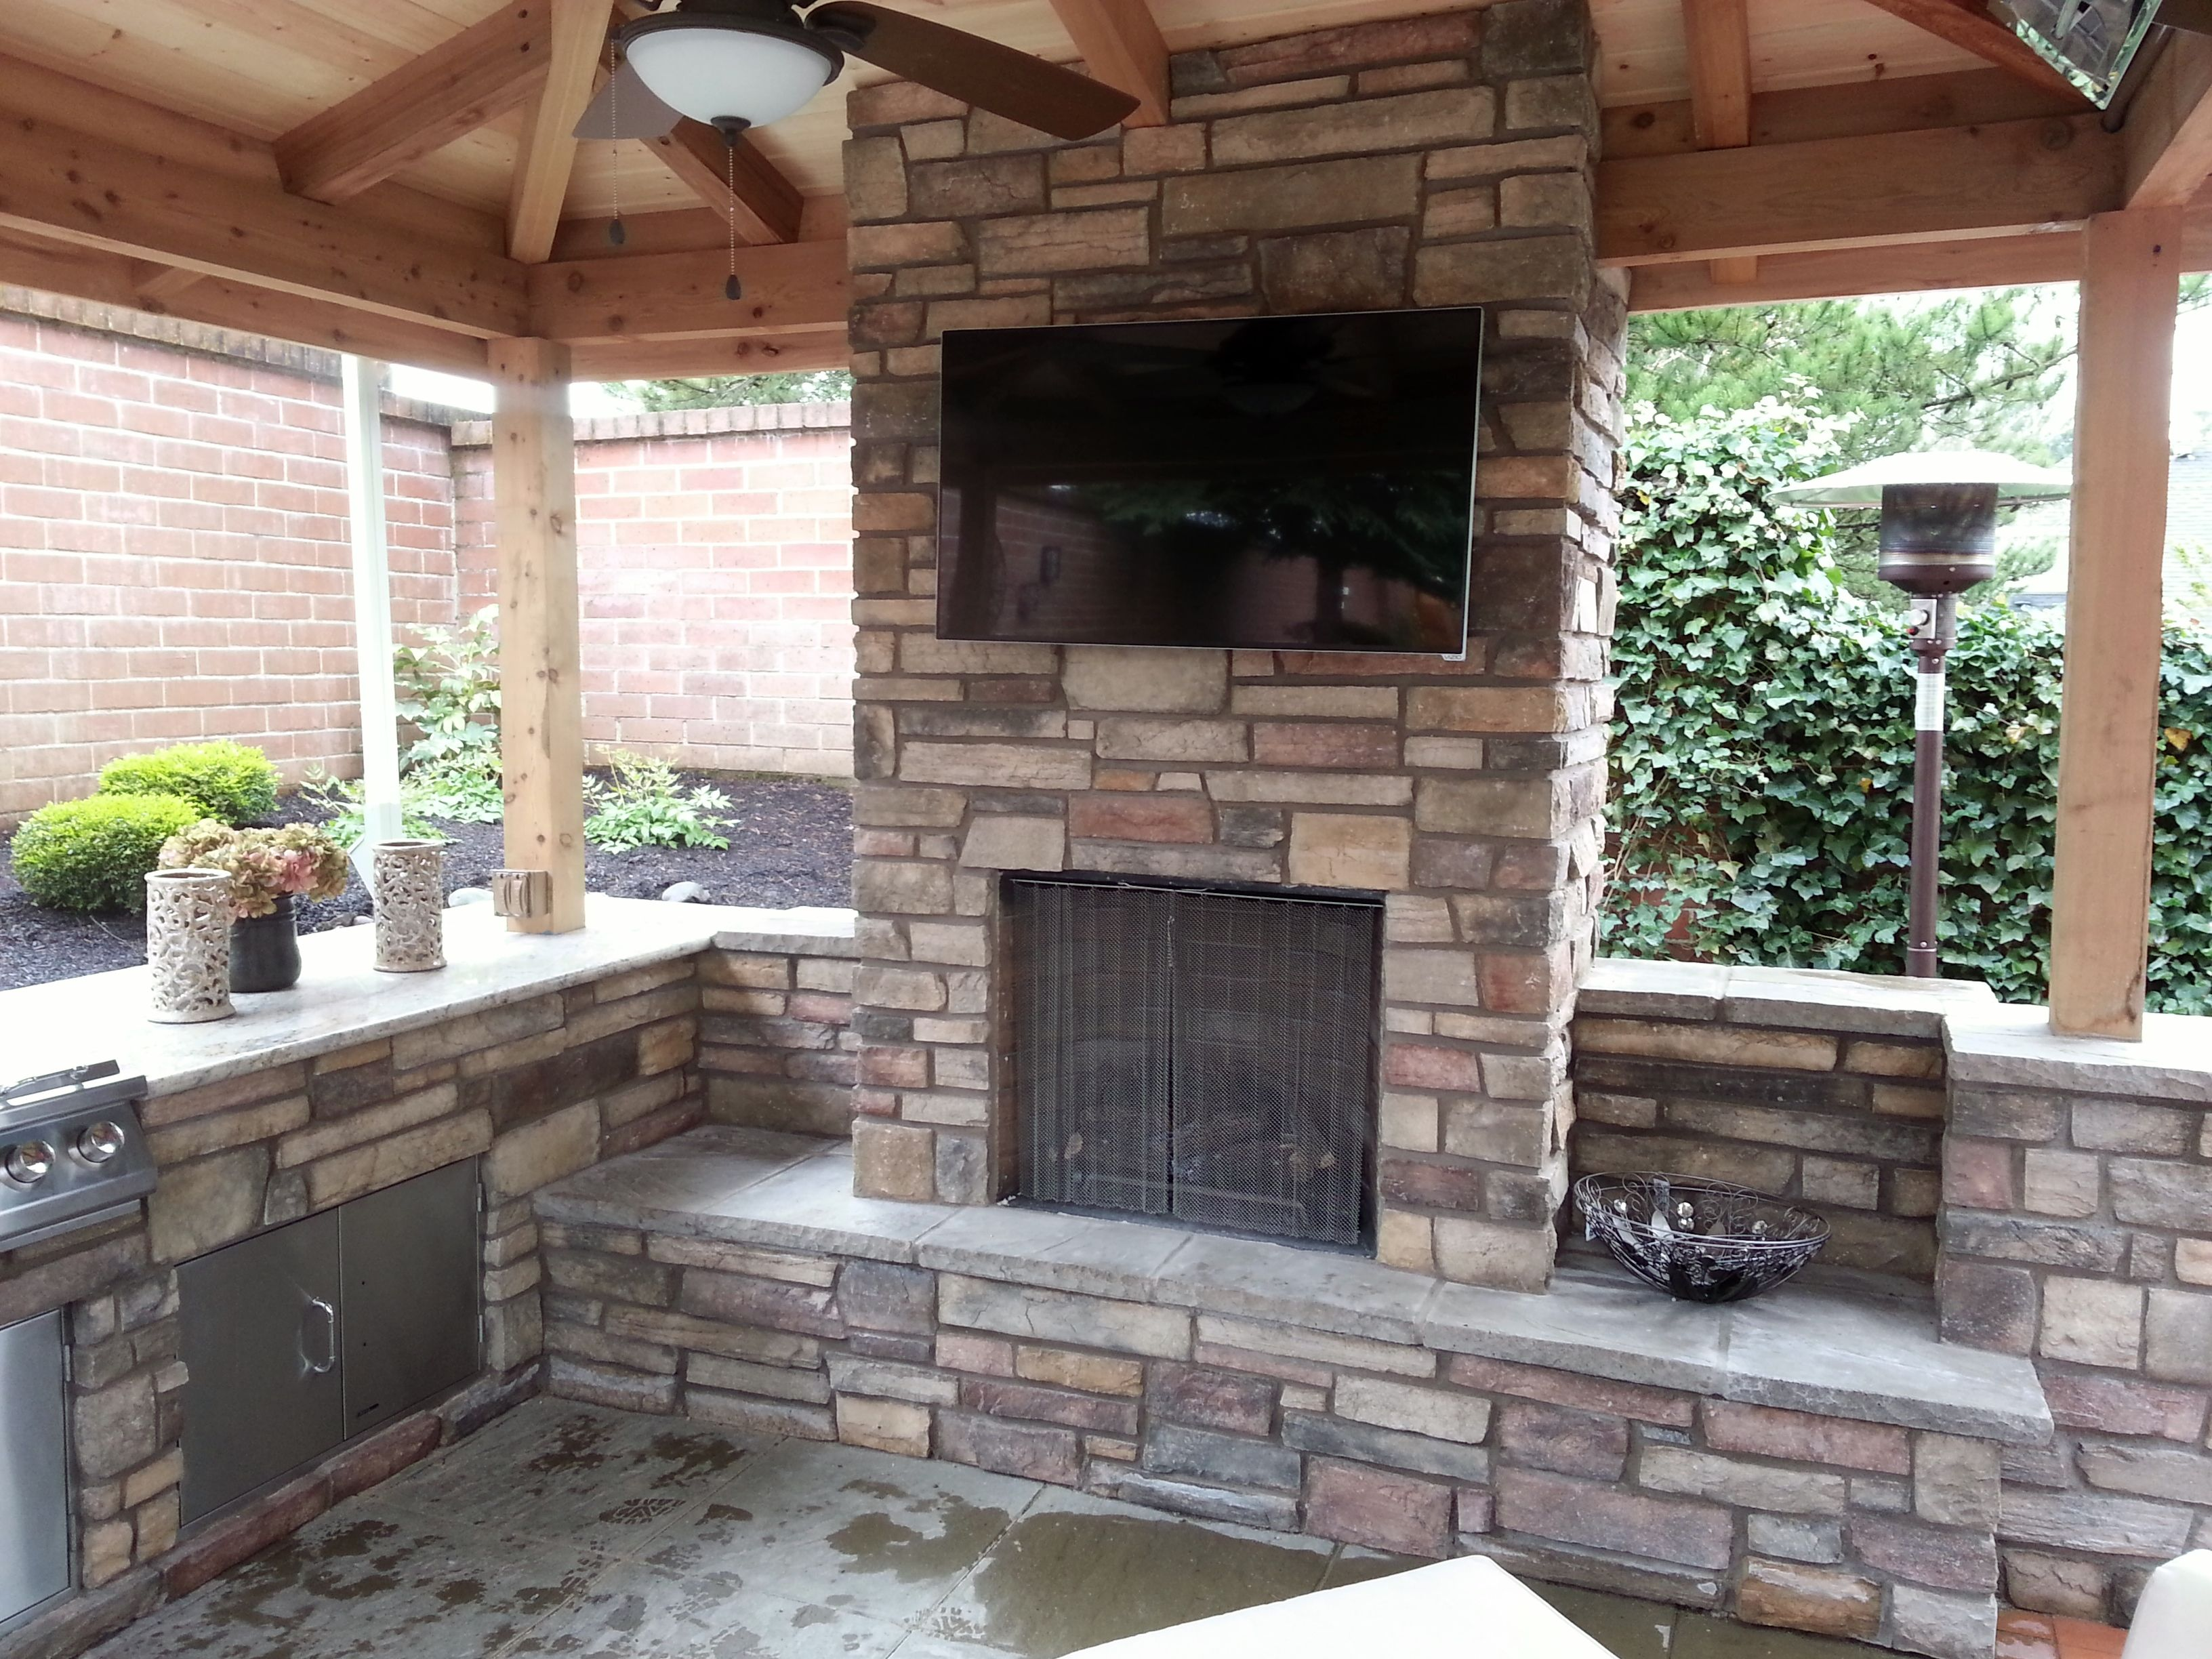 Outdoor Fireplace, Outdoor Living, Outdoor Kitchen, Covered Patio, Granite  Countertops, Stone